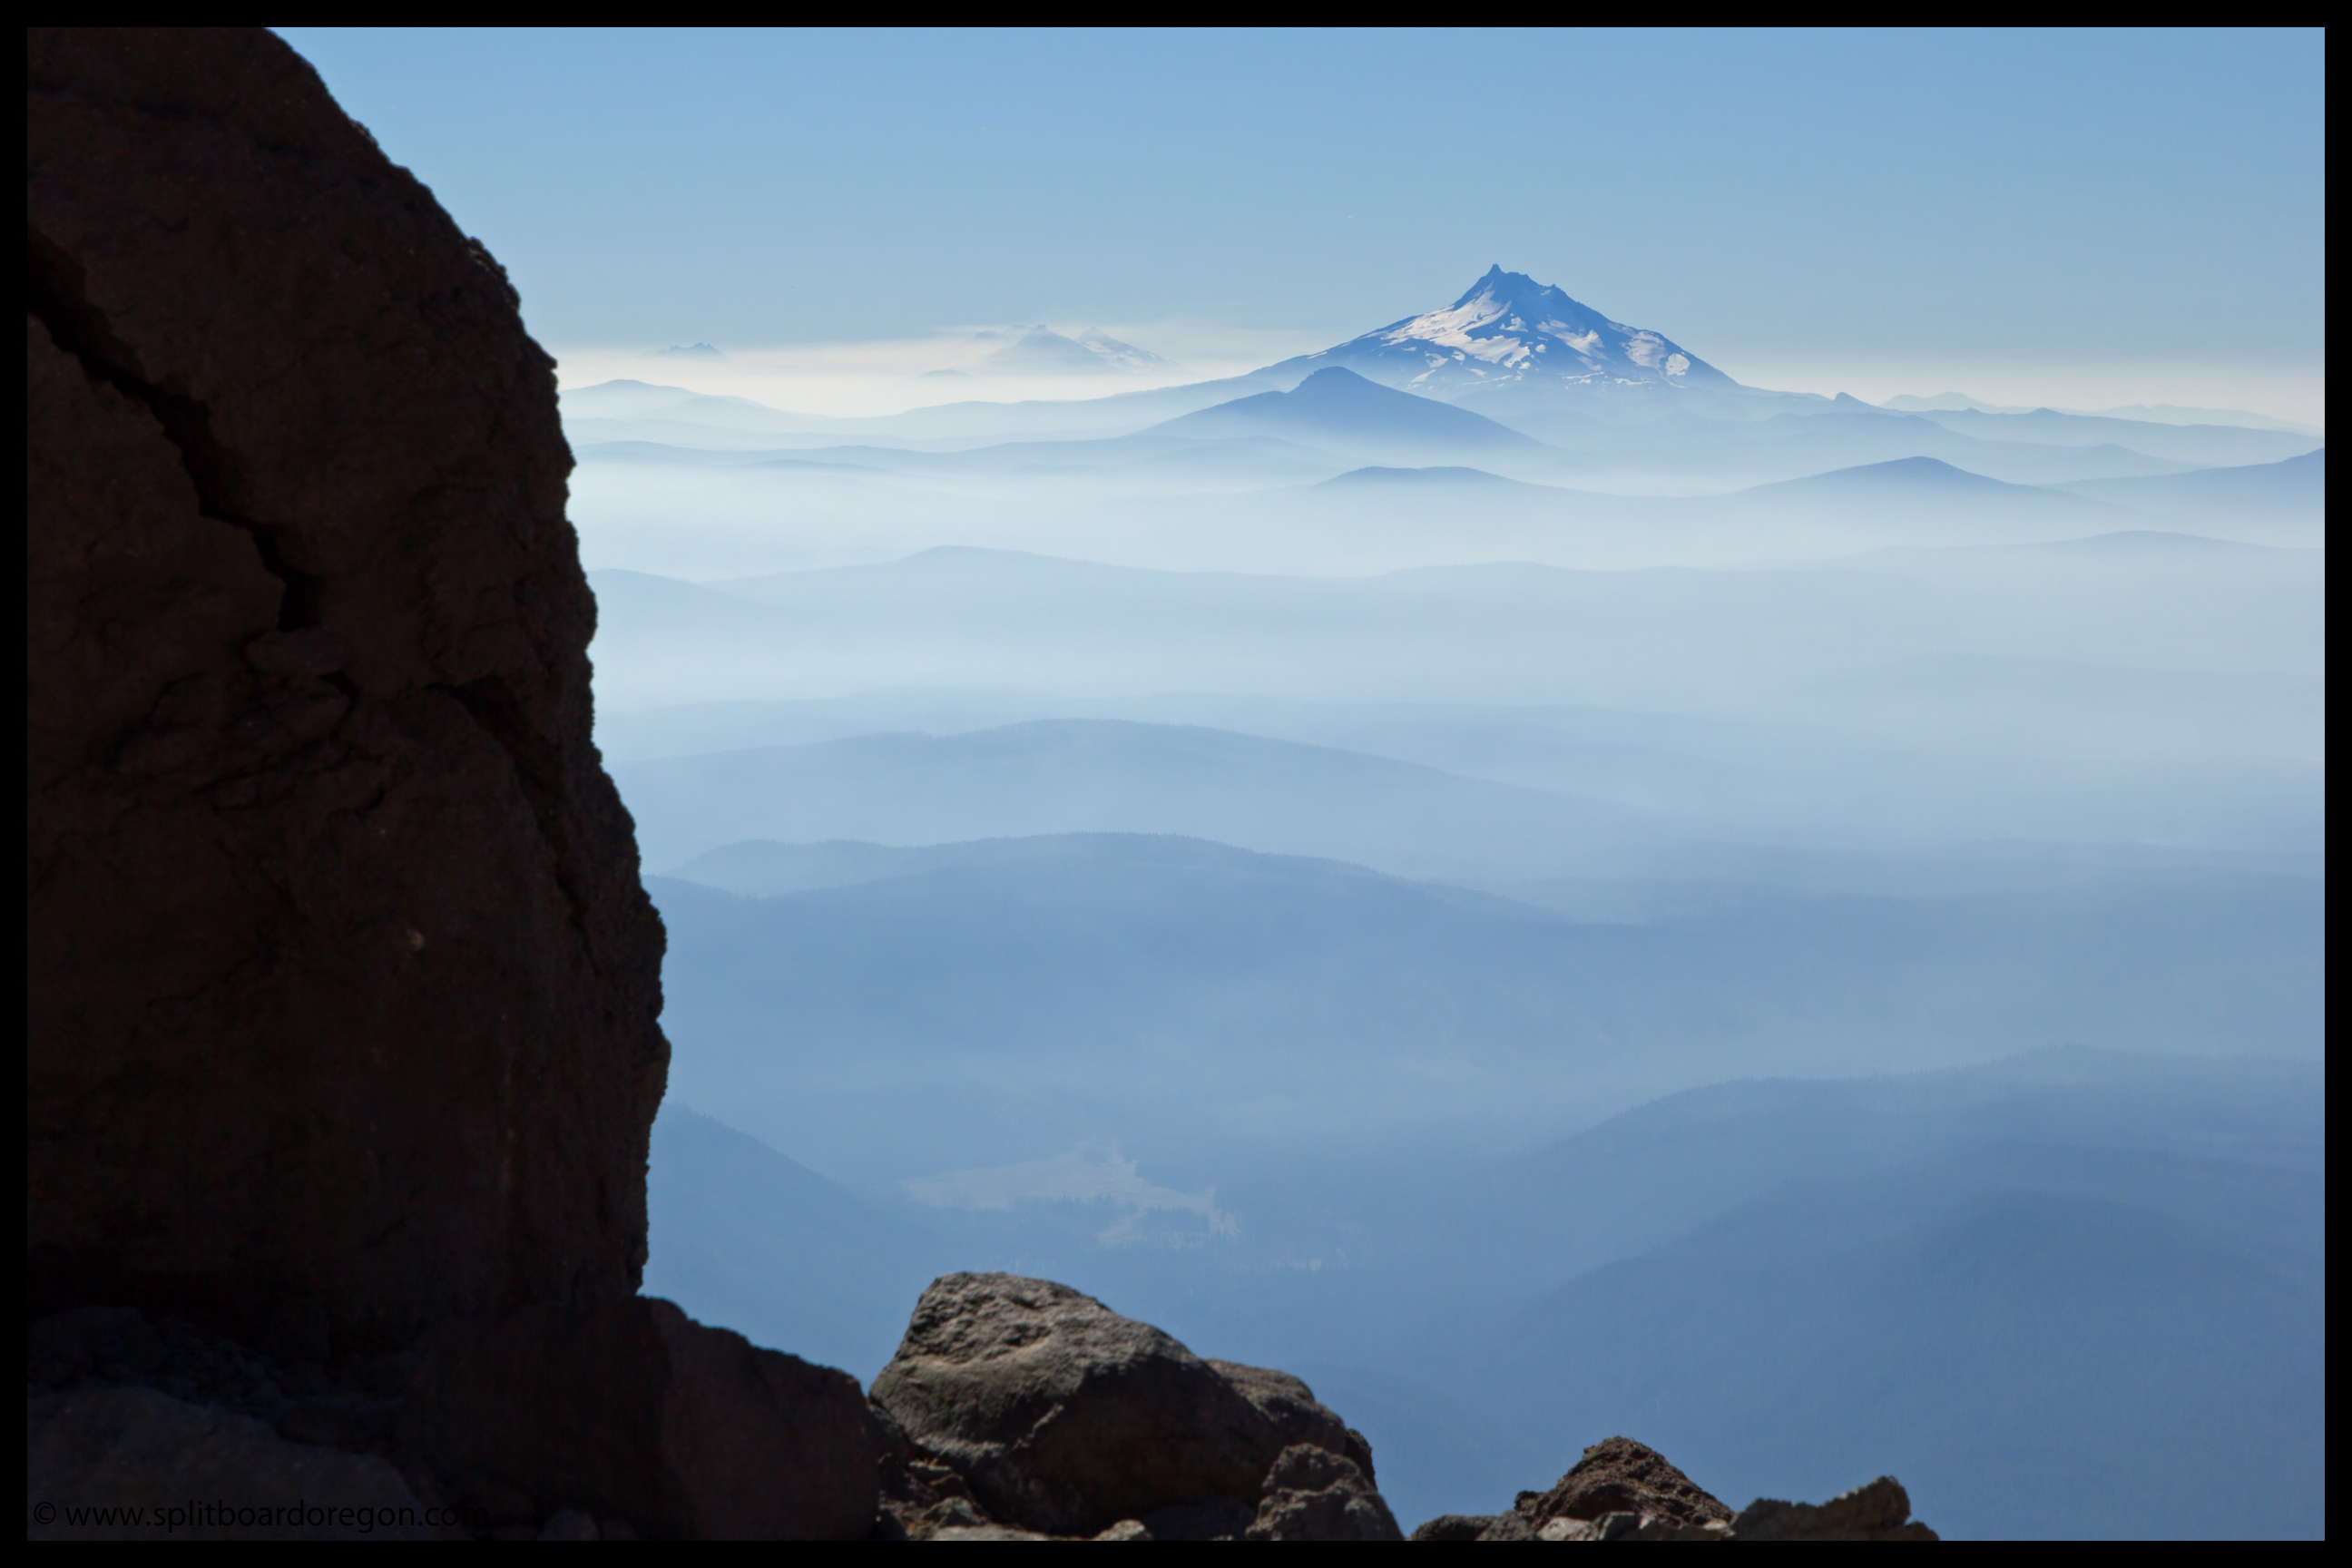 Central Oregon volcanoes through the smoke and haze